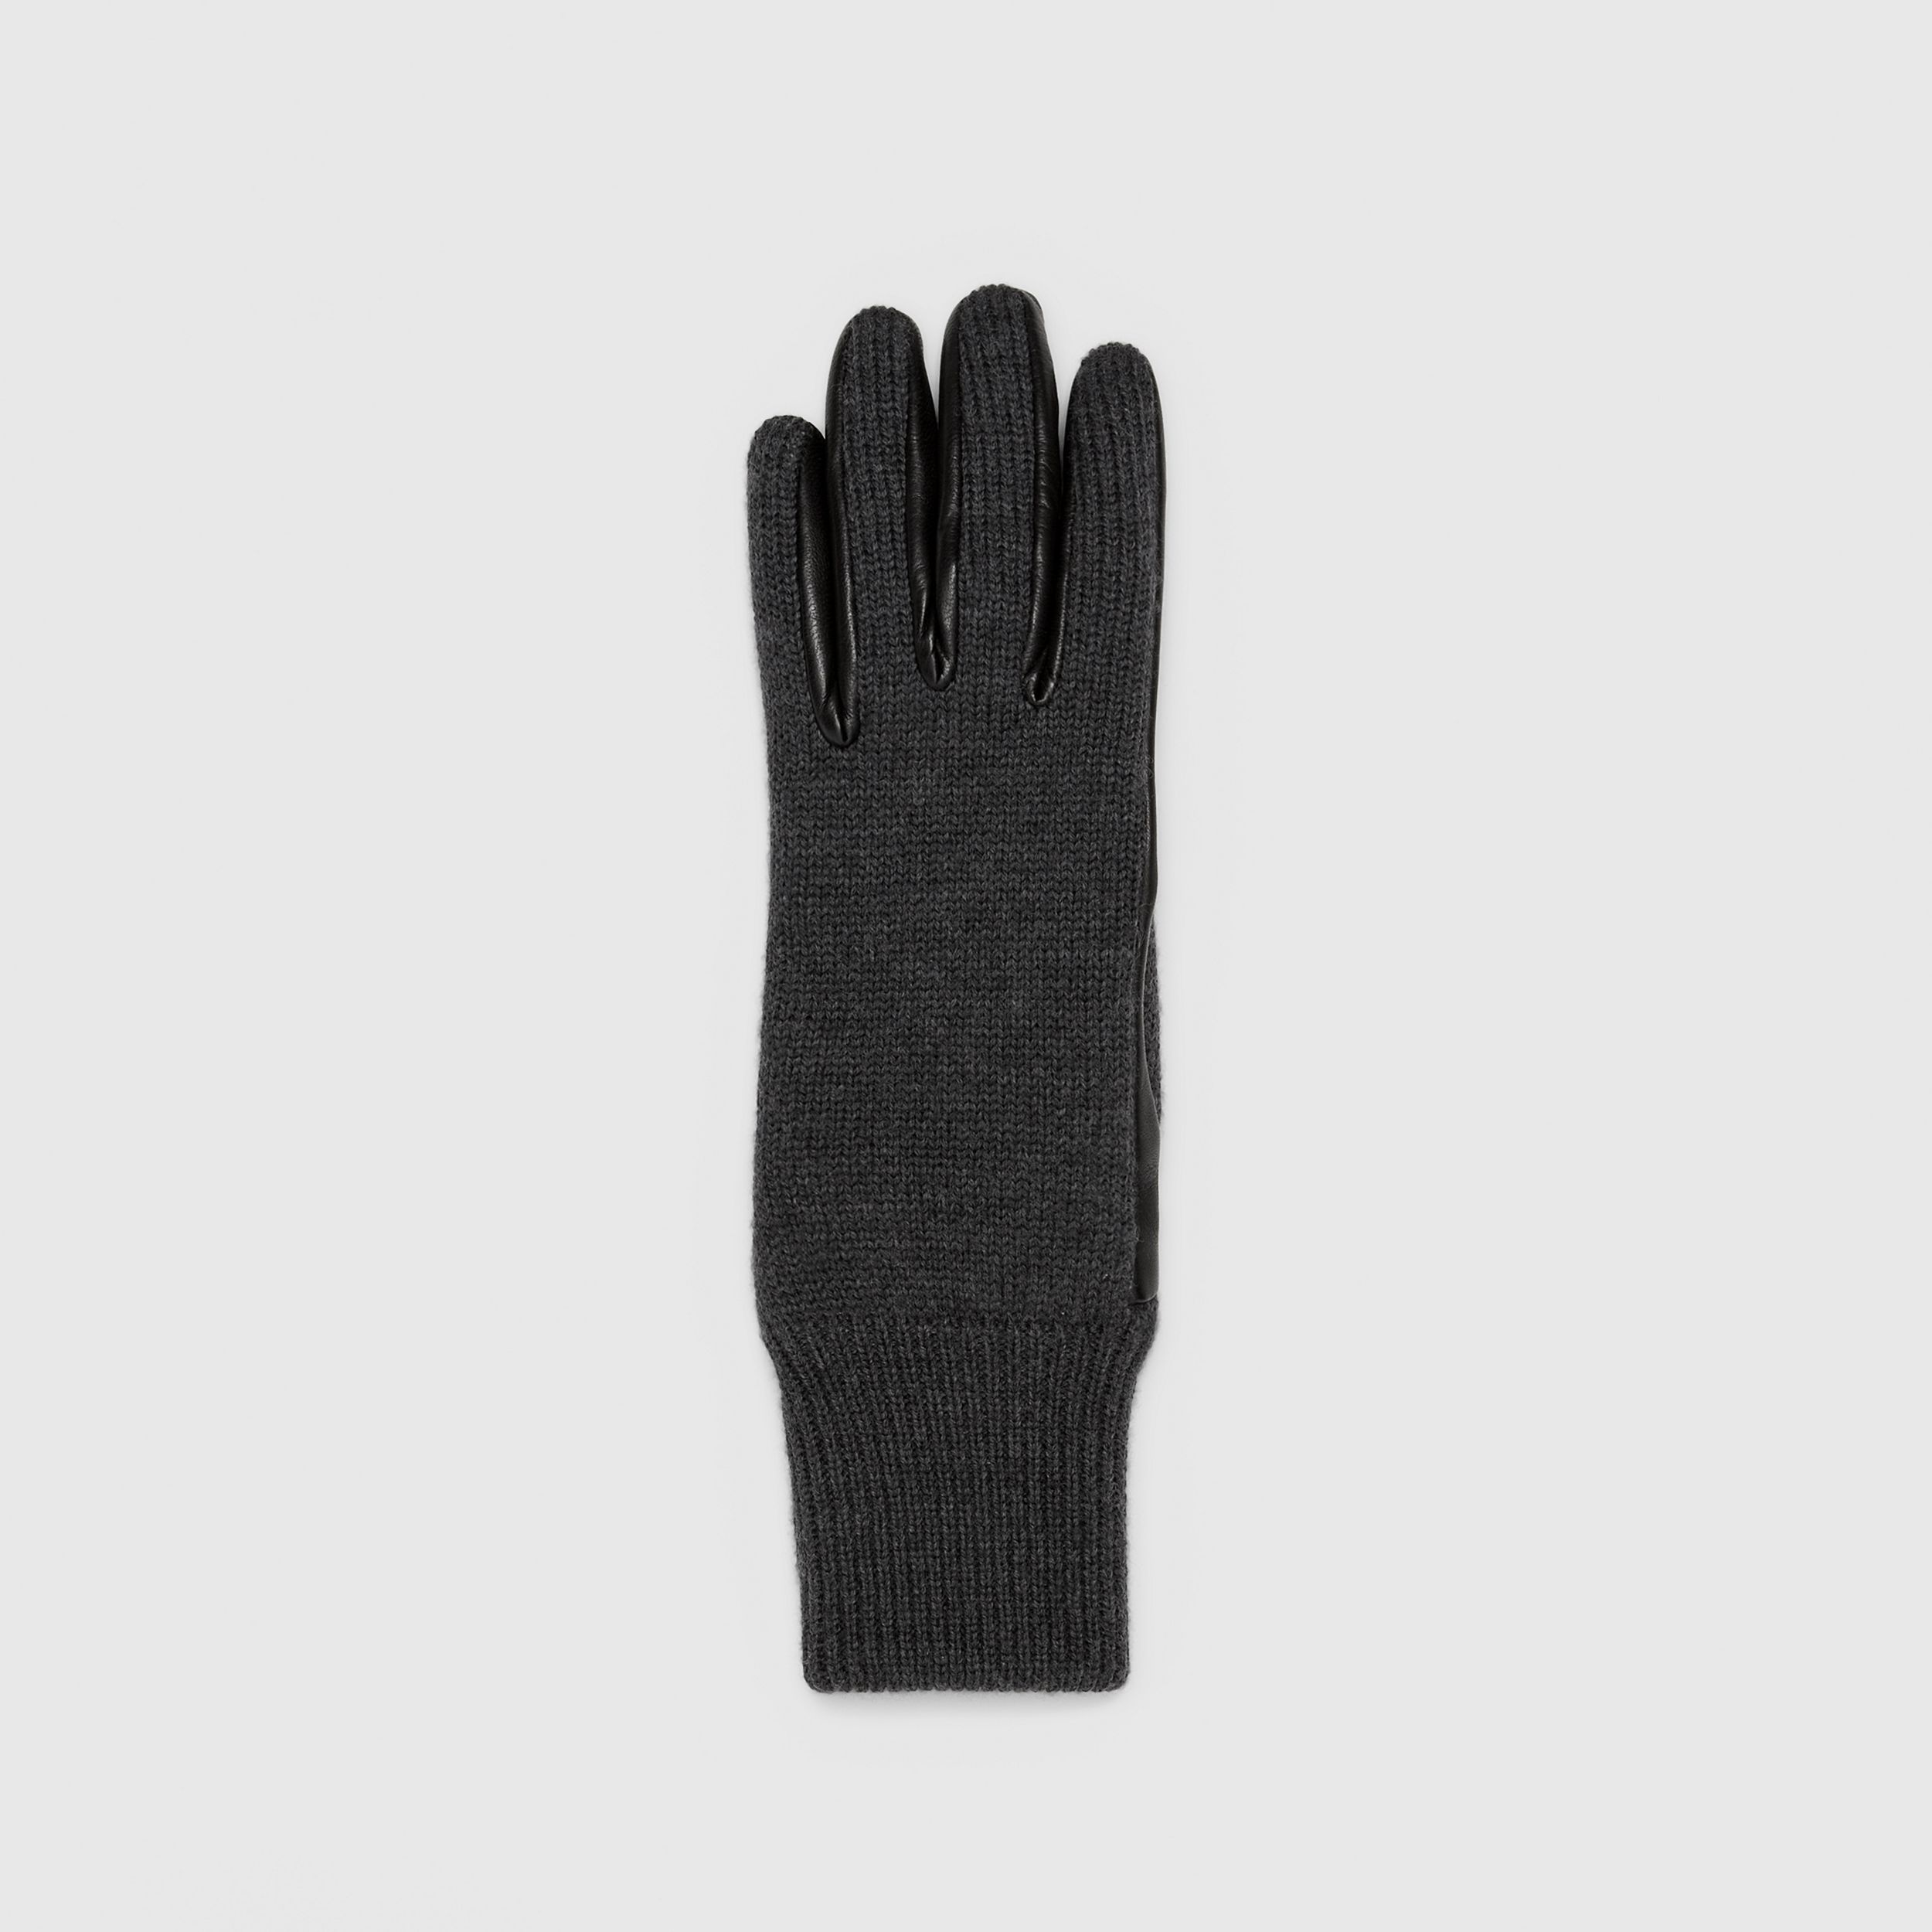 Cashmere-lined Merino Wool and Lambskin Gloves in Black | Burberry - 3